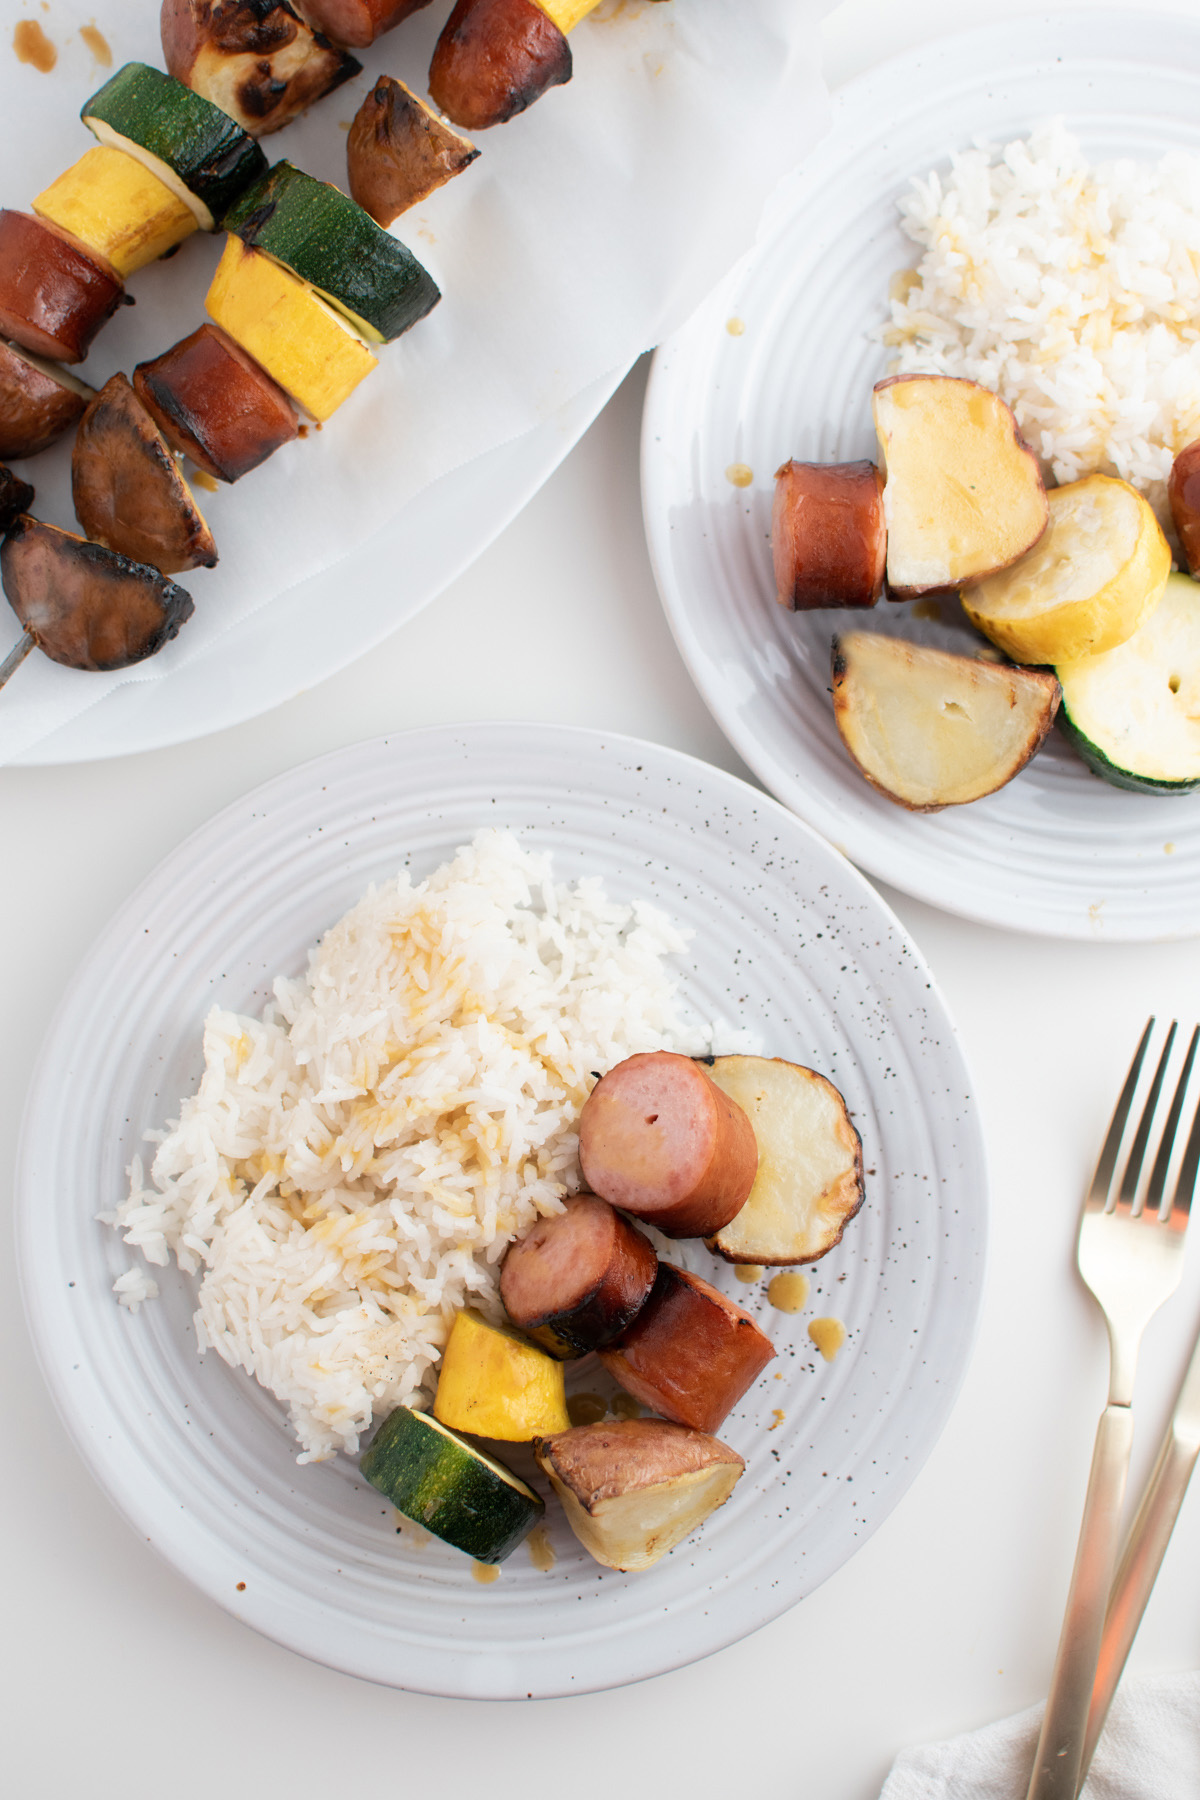 Two plates of grilled sausage, potatoes, squash, and rice on white table next to gold utensils.